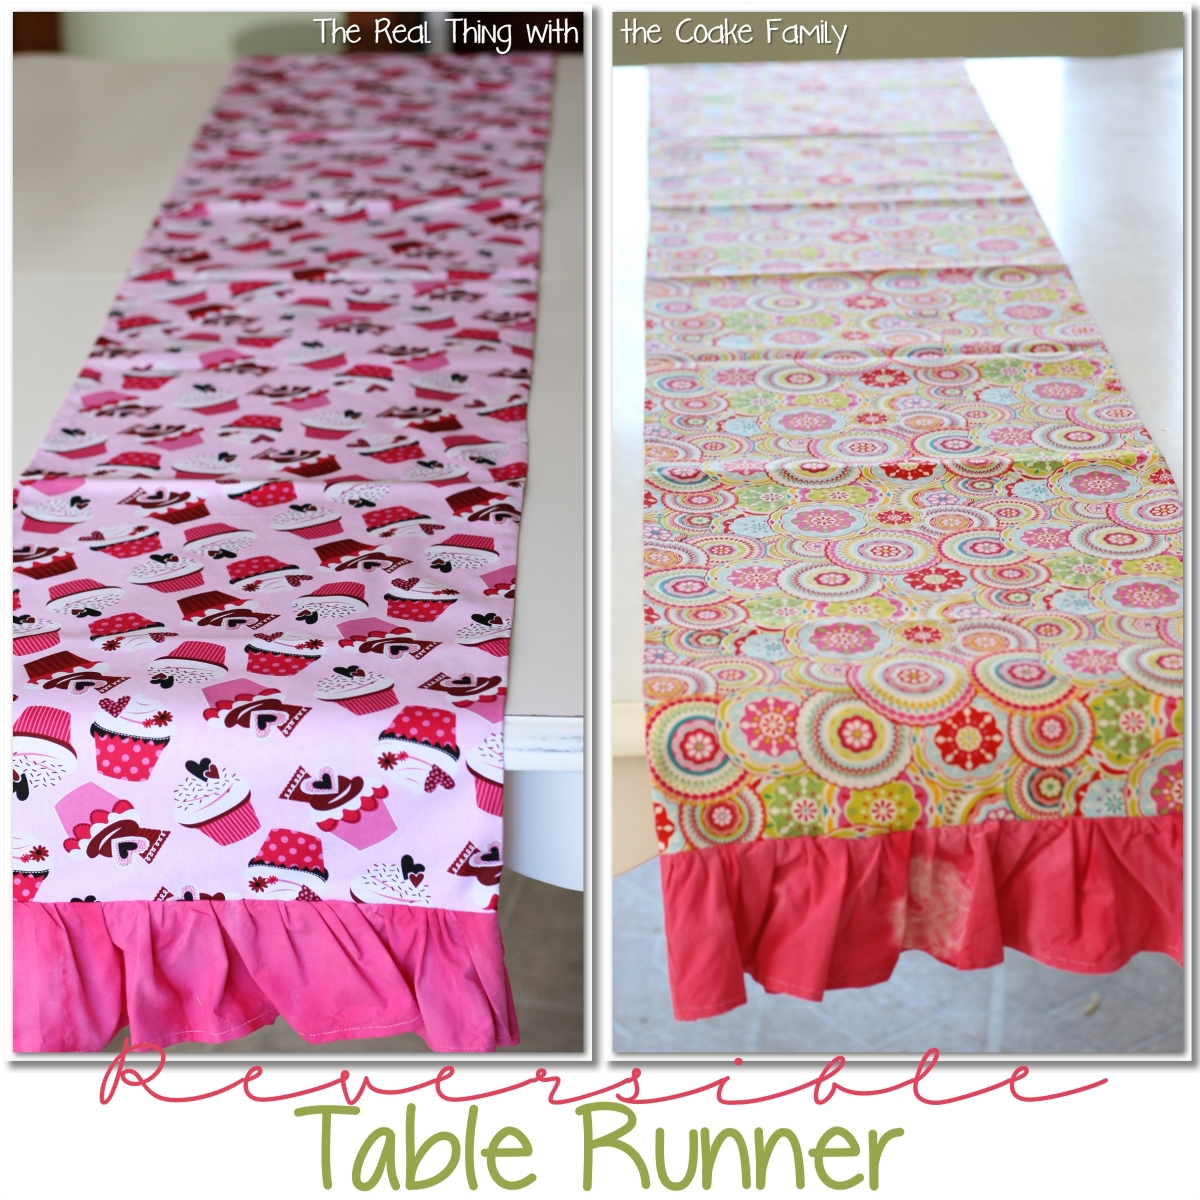 Table runner pattern the real thing with the coake family for Diy valentine table runner